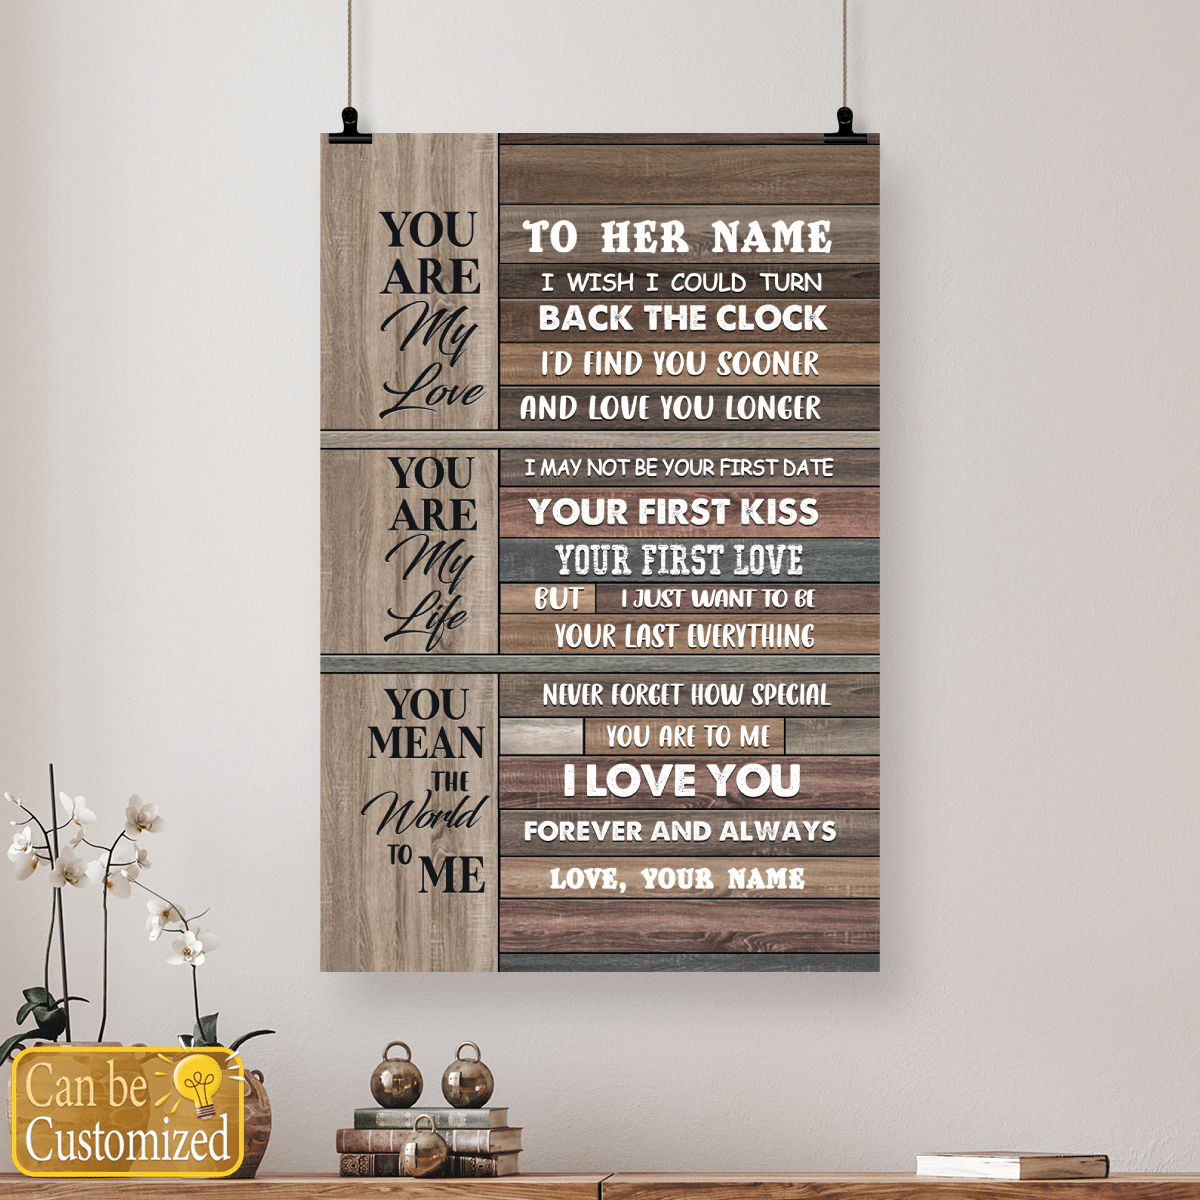 Youre my love youre my life you mean the world to me custom name poster and canvas 5